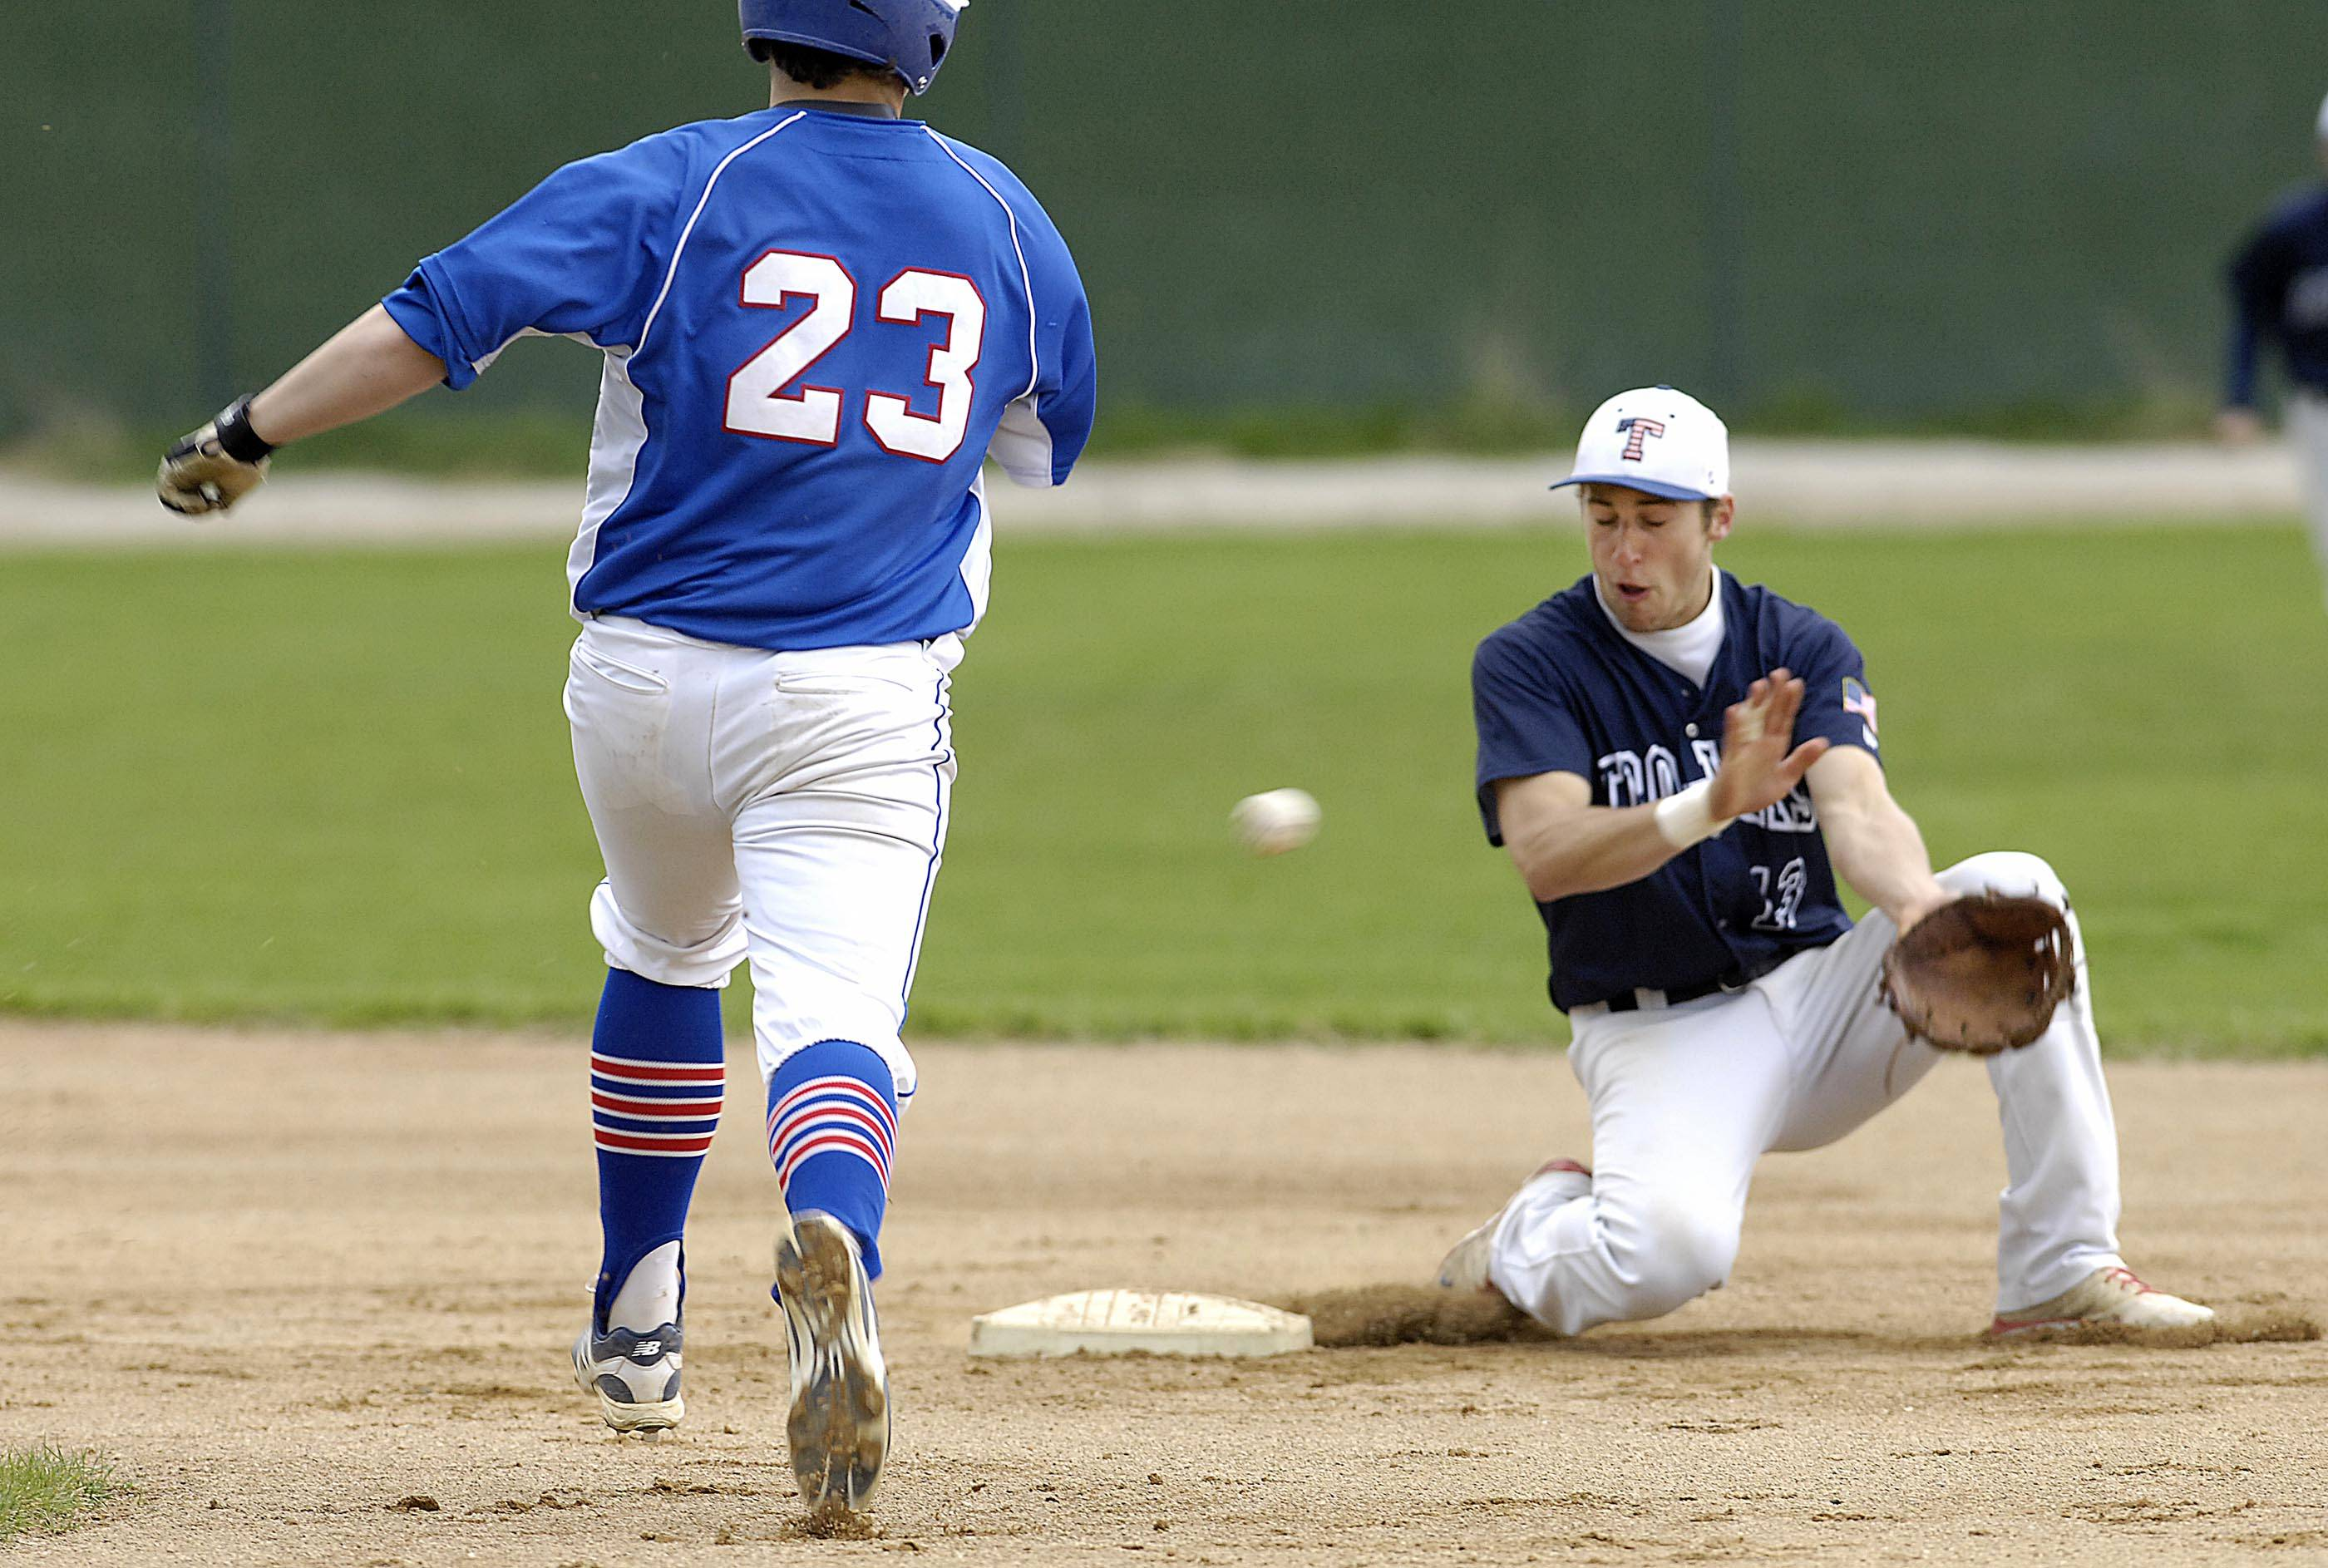 Dundee-Crown's Riley Alvarado hustles into second as the throw reaches Cary-Grove's Dean Christakes Wednesday in Cary. Alvarado was safe with the steal in the first inning.